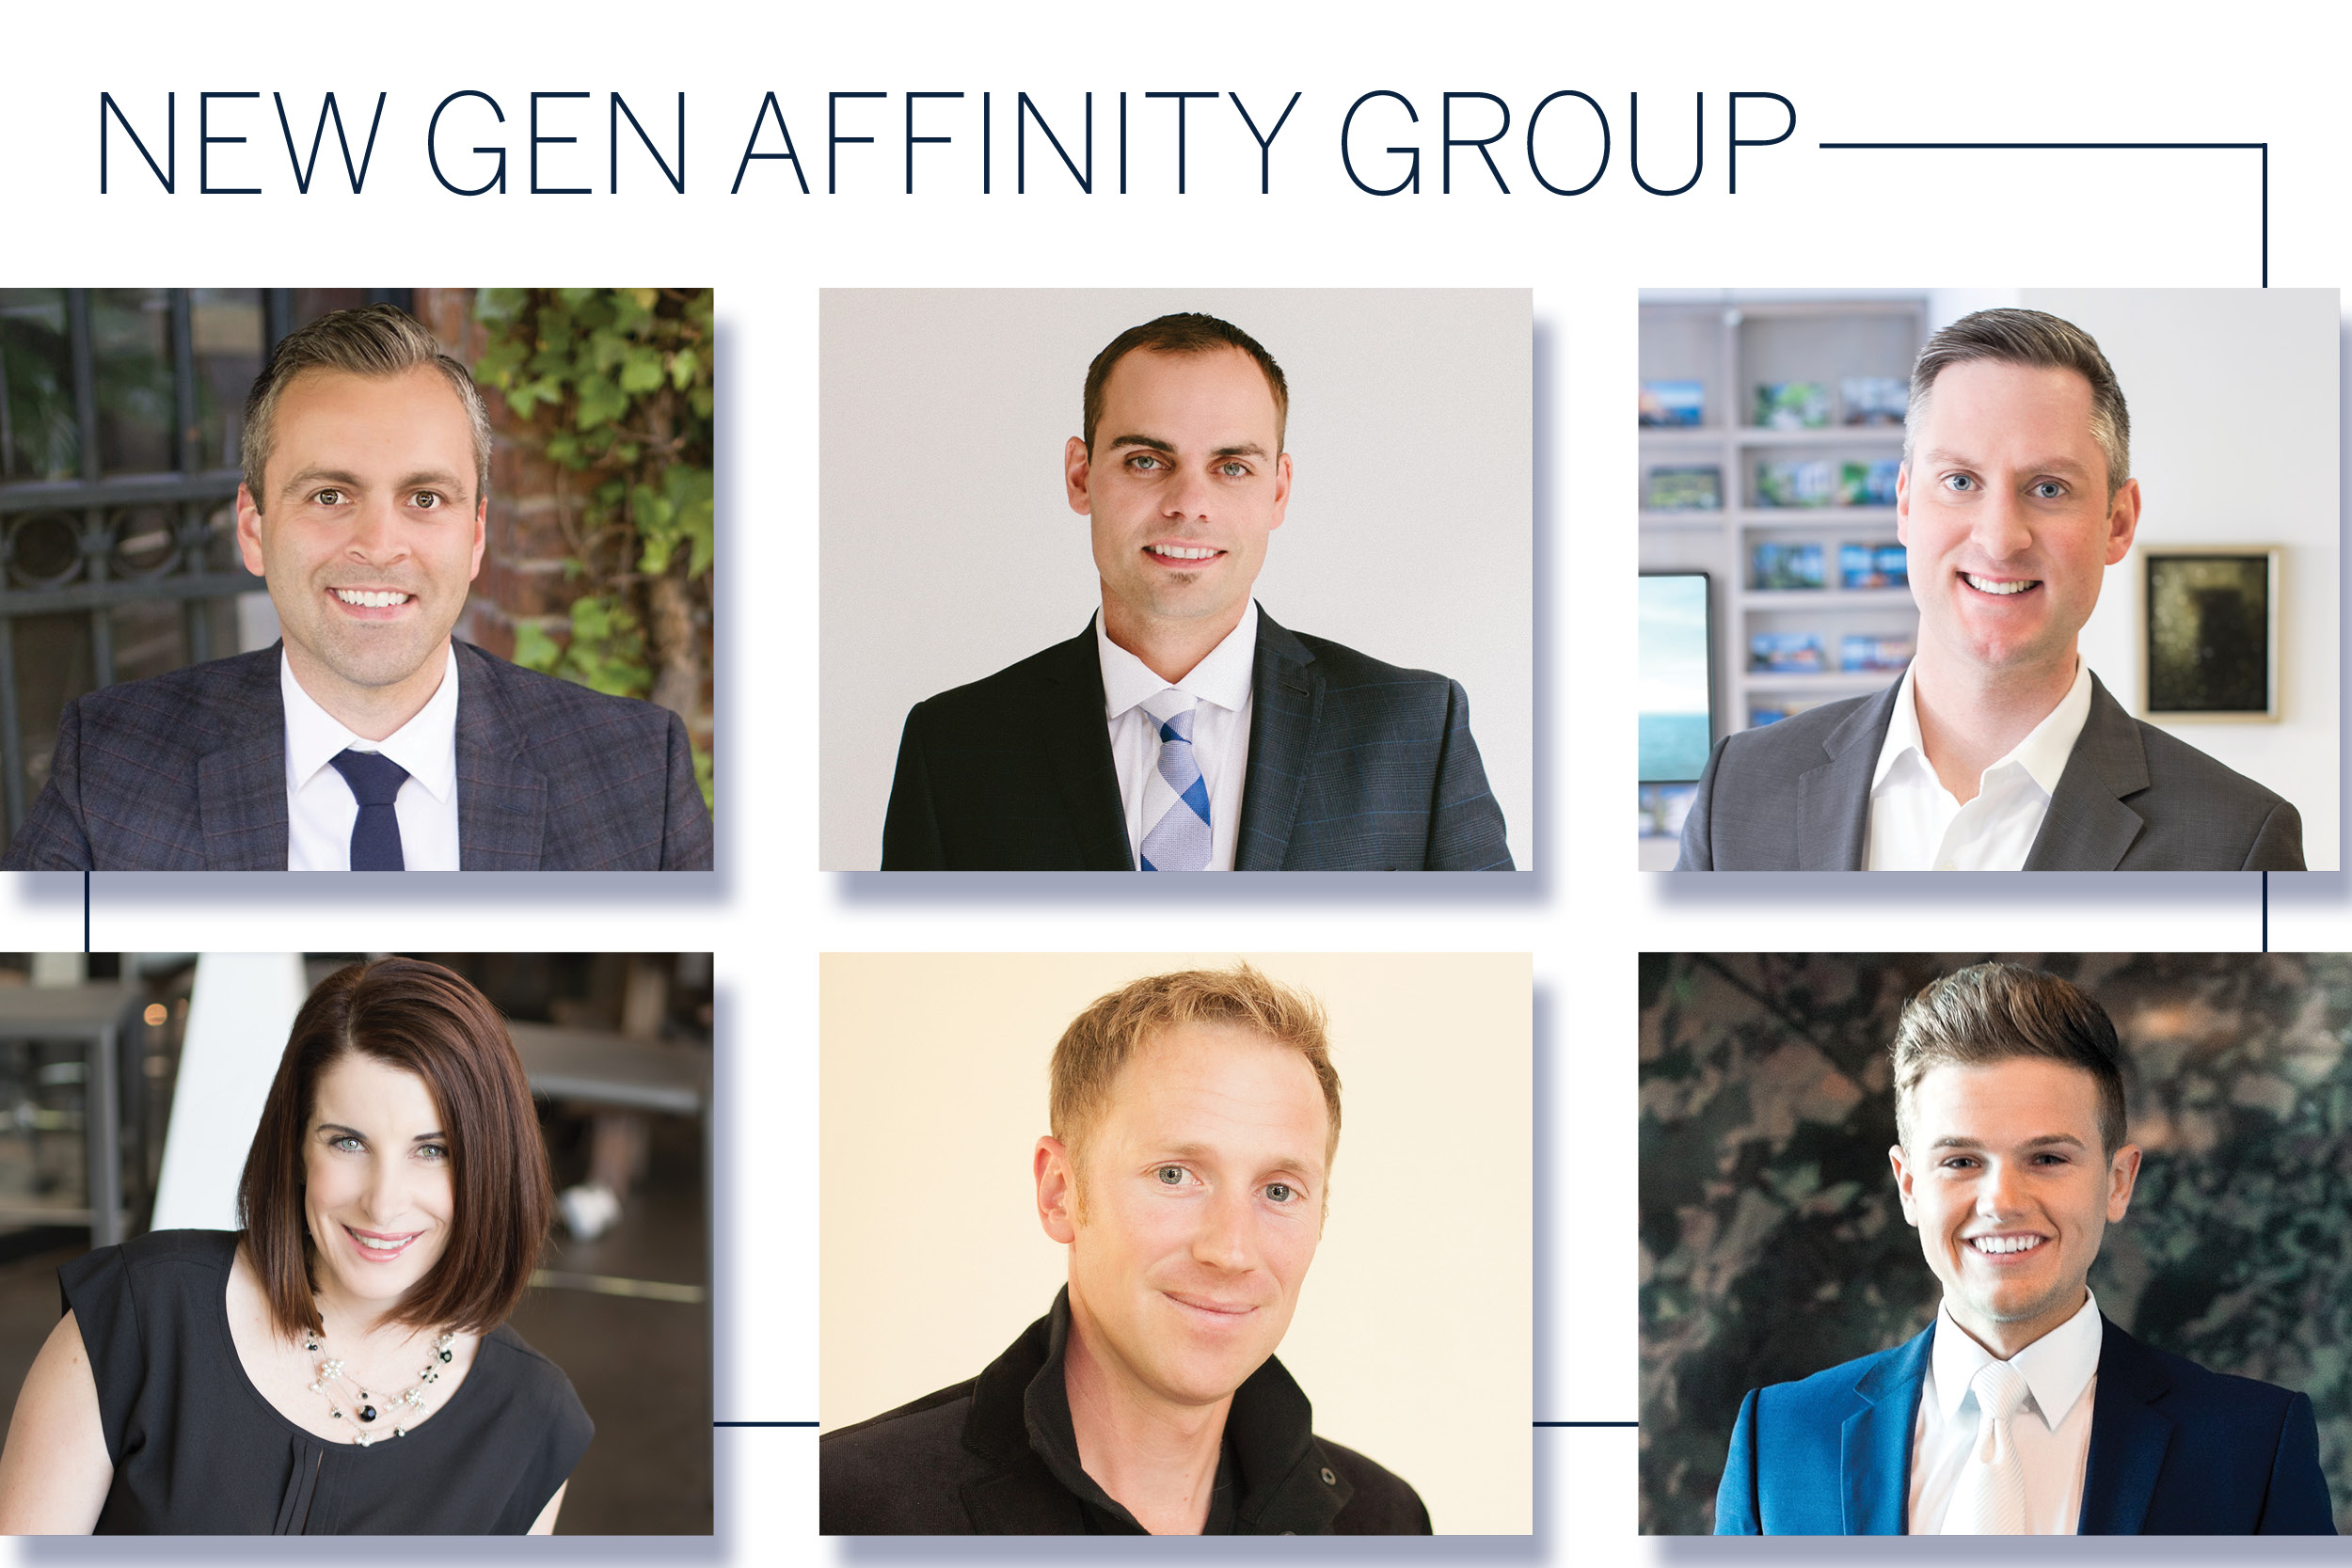 New Gen Affinity Group.jpg